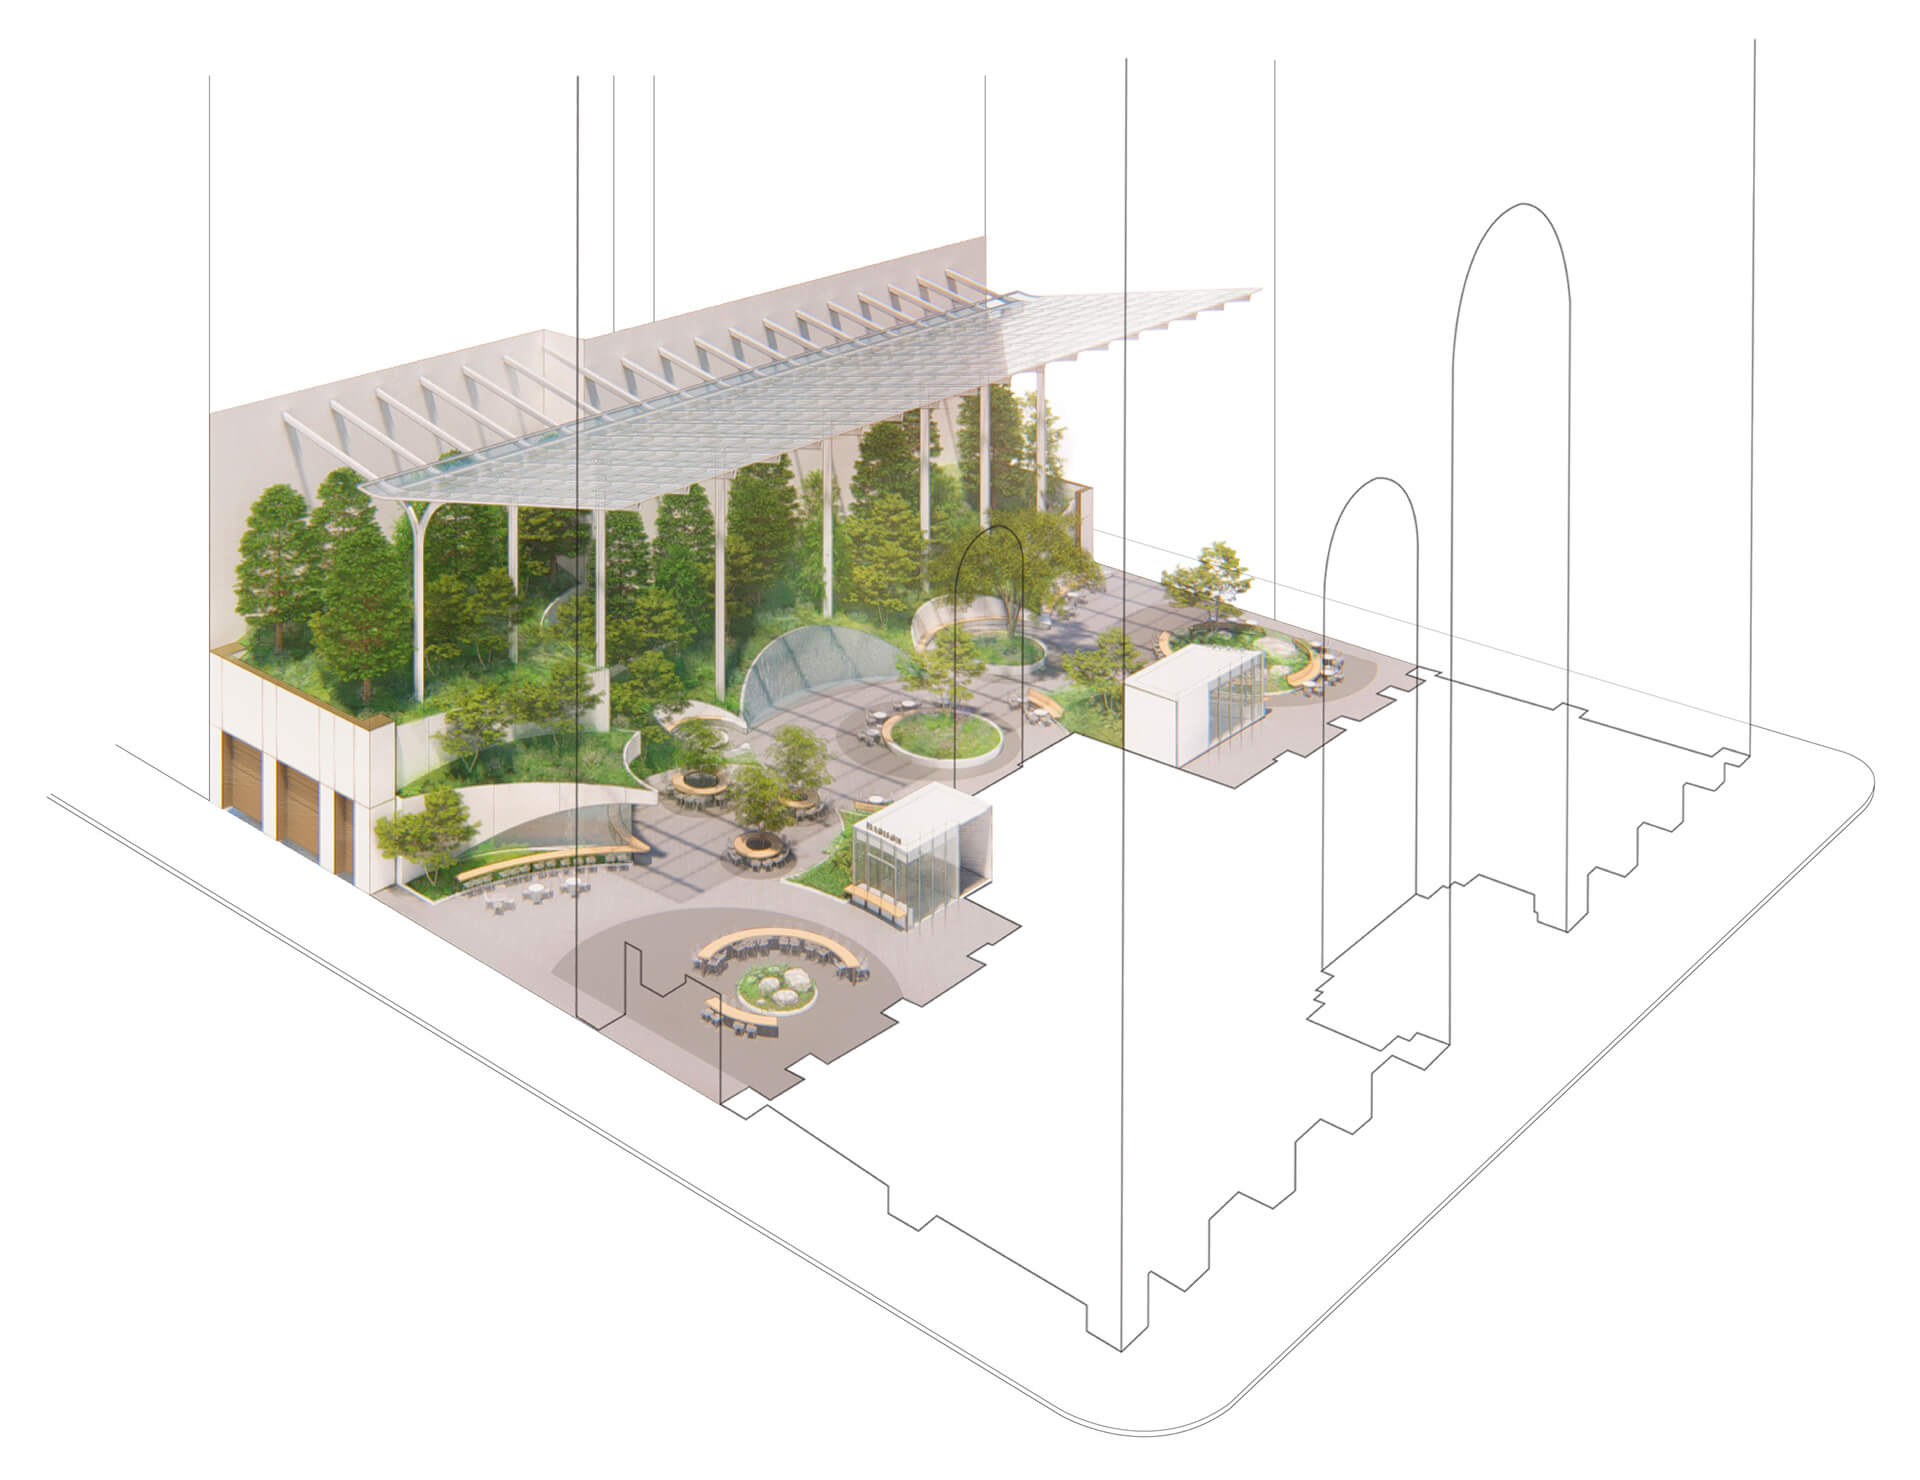 Axonometric view of garden, looking north, revealing connections to the building and streets | 550 Madison Garden | The Olayan Group | Snøhetta | STIRworld